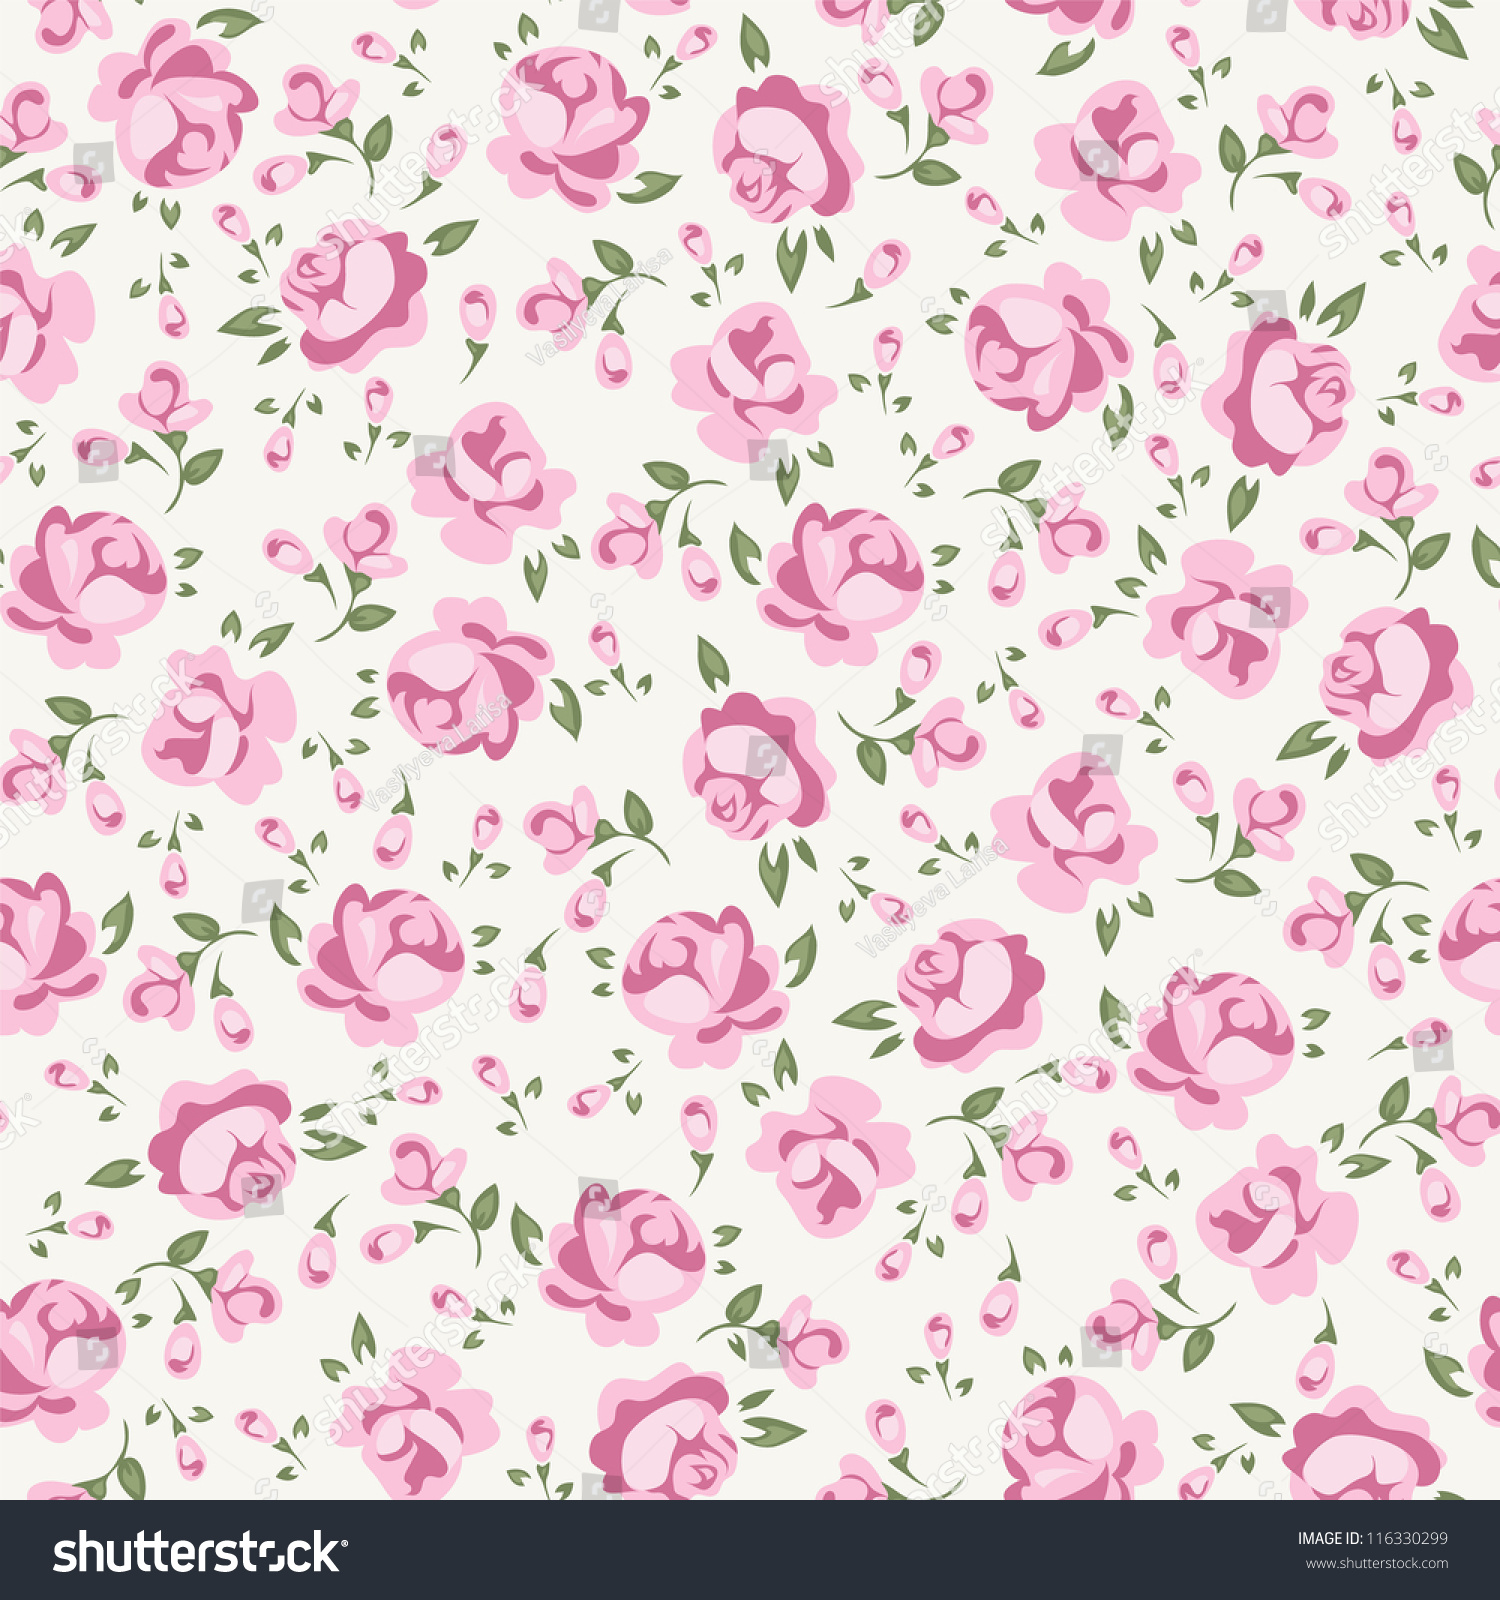 Shabby Chic Rose Pattern Scrap Booking Floral Seamless Background 116330299